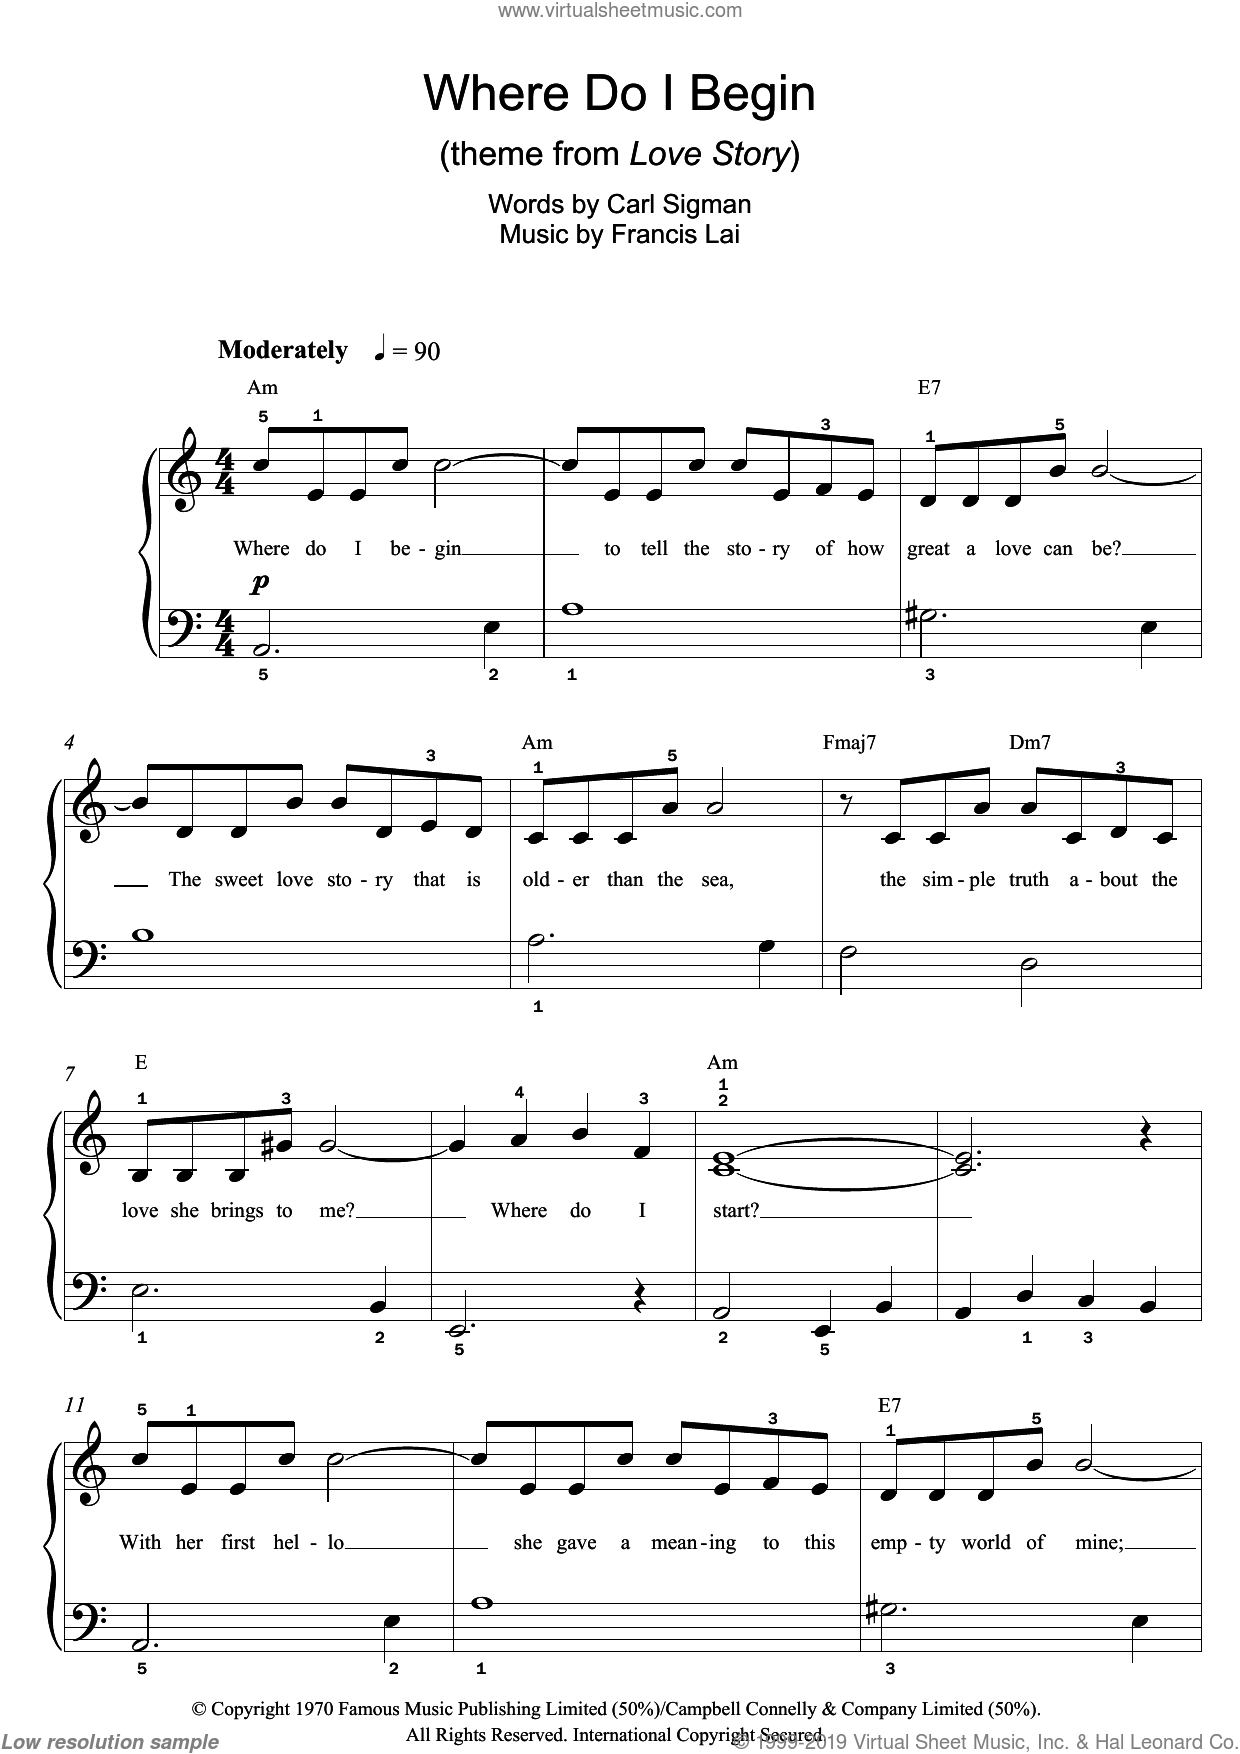 Where Do I Begin sheet music for piano solo (chords) by Francis Lai